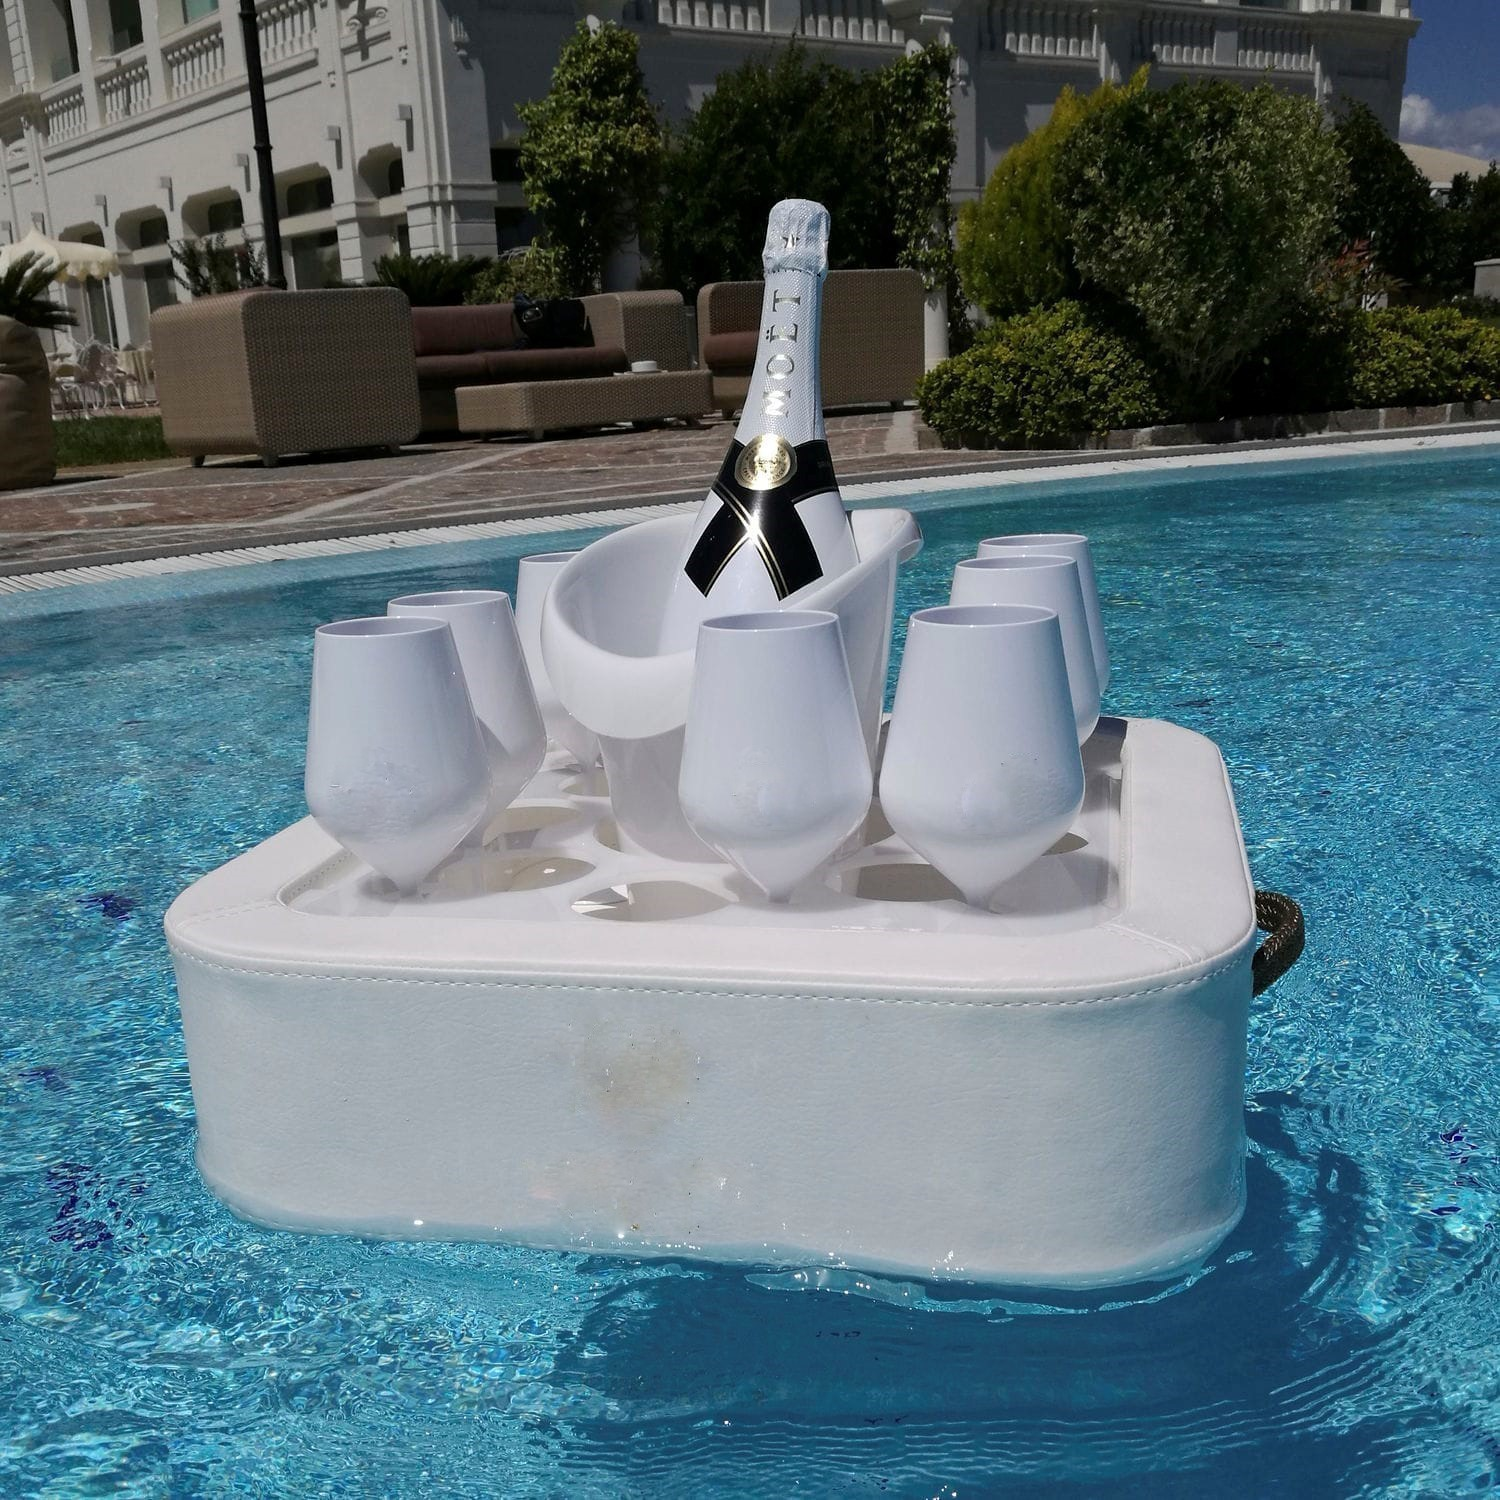 floating pool chairs with cup holders ergonomic chair staples in bar perfect for gatherings couture